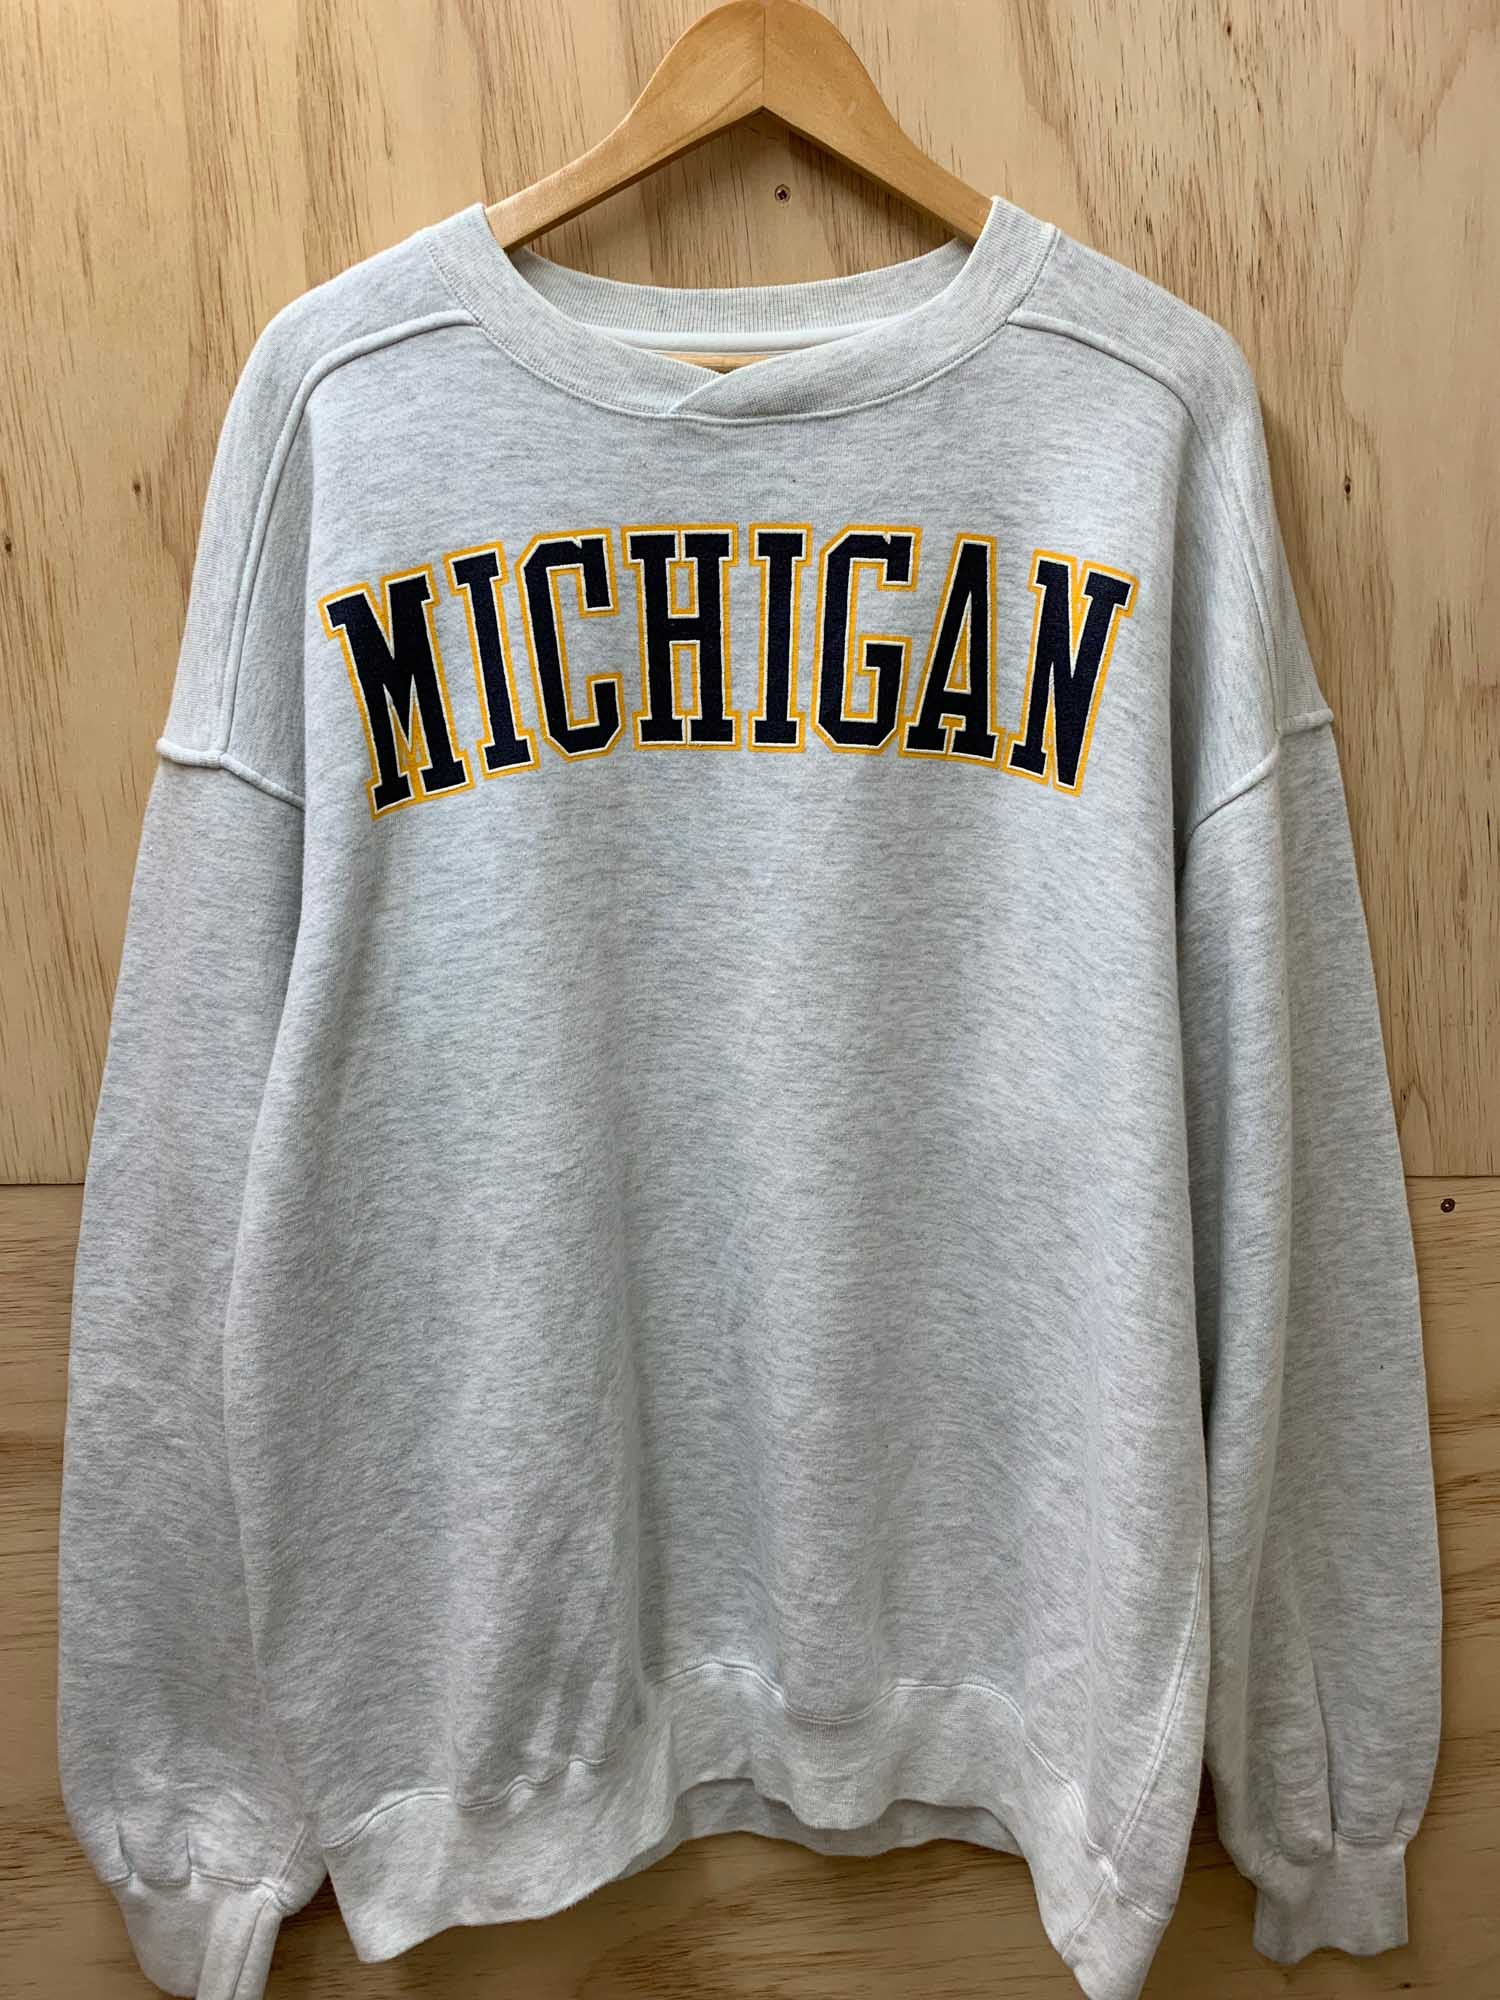 VINTAGE MICHIGAN SPELL OUT CREWNECK